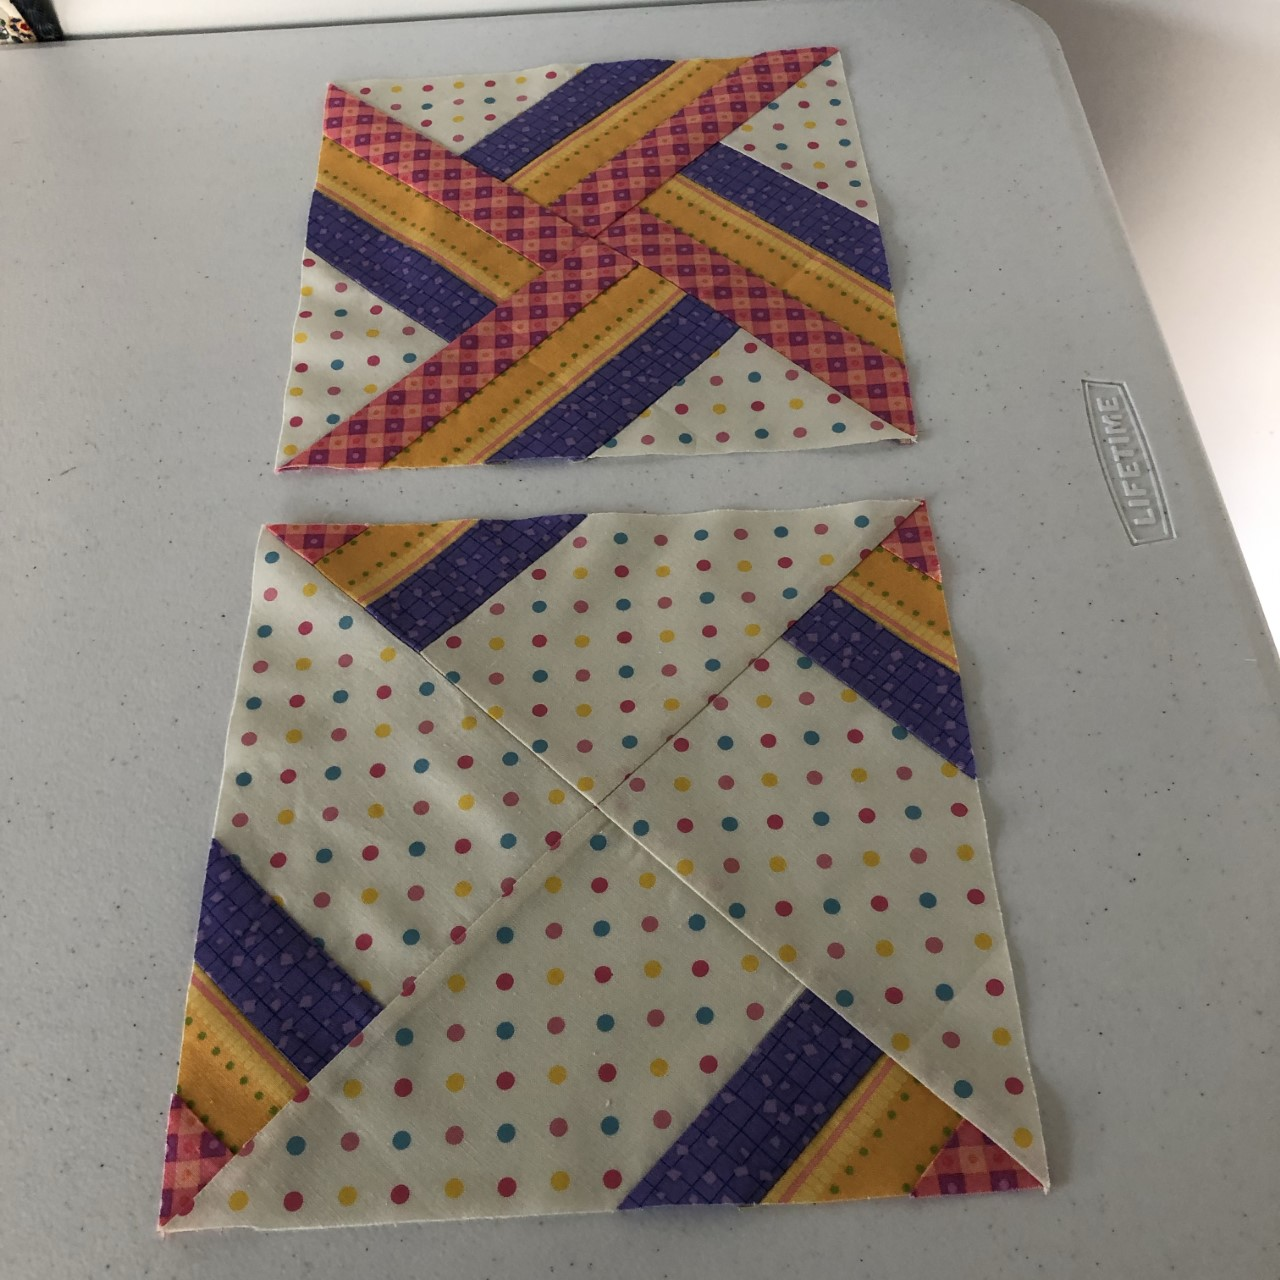 Sewing Quilt Blocks with SewGreen@Rochester: The Whirlwind Block